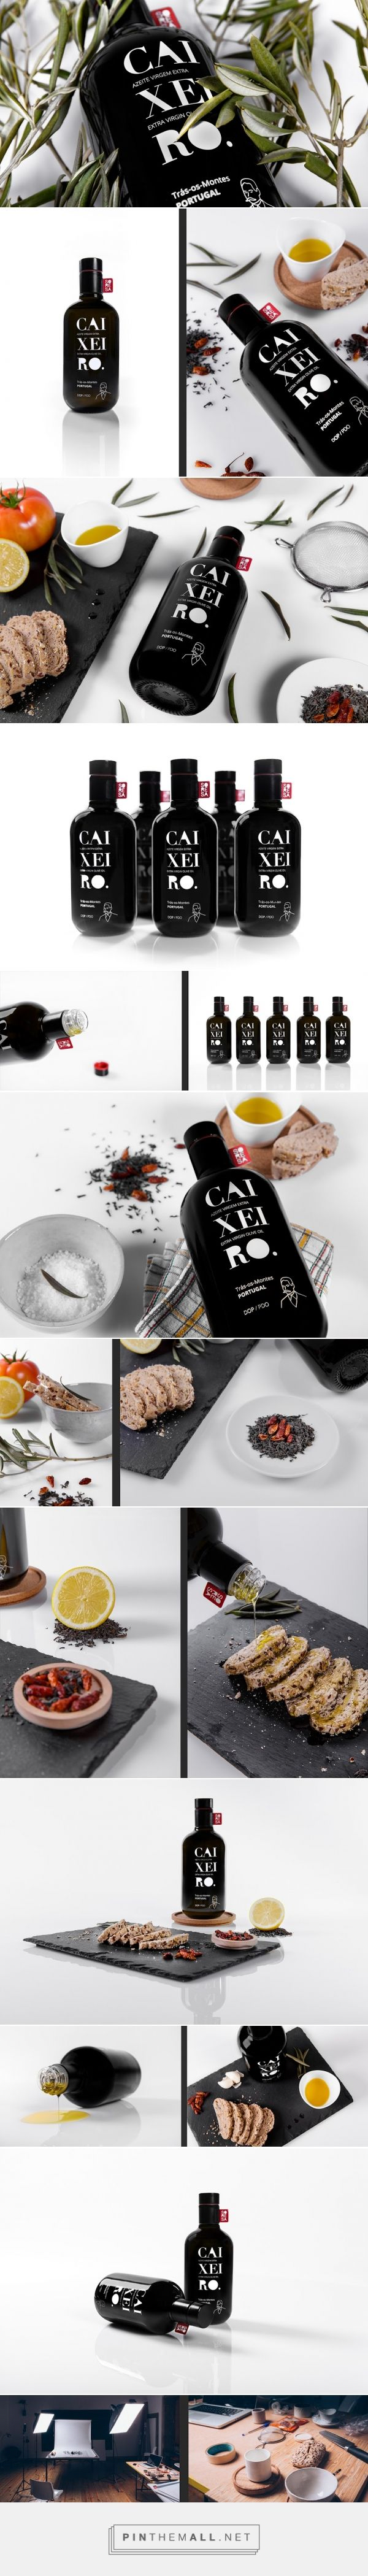 Caixeiro Olive Oil packaging design - http://www.packagingoftheworld.com/2016/05/caixeiro-olive-oil.html